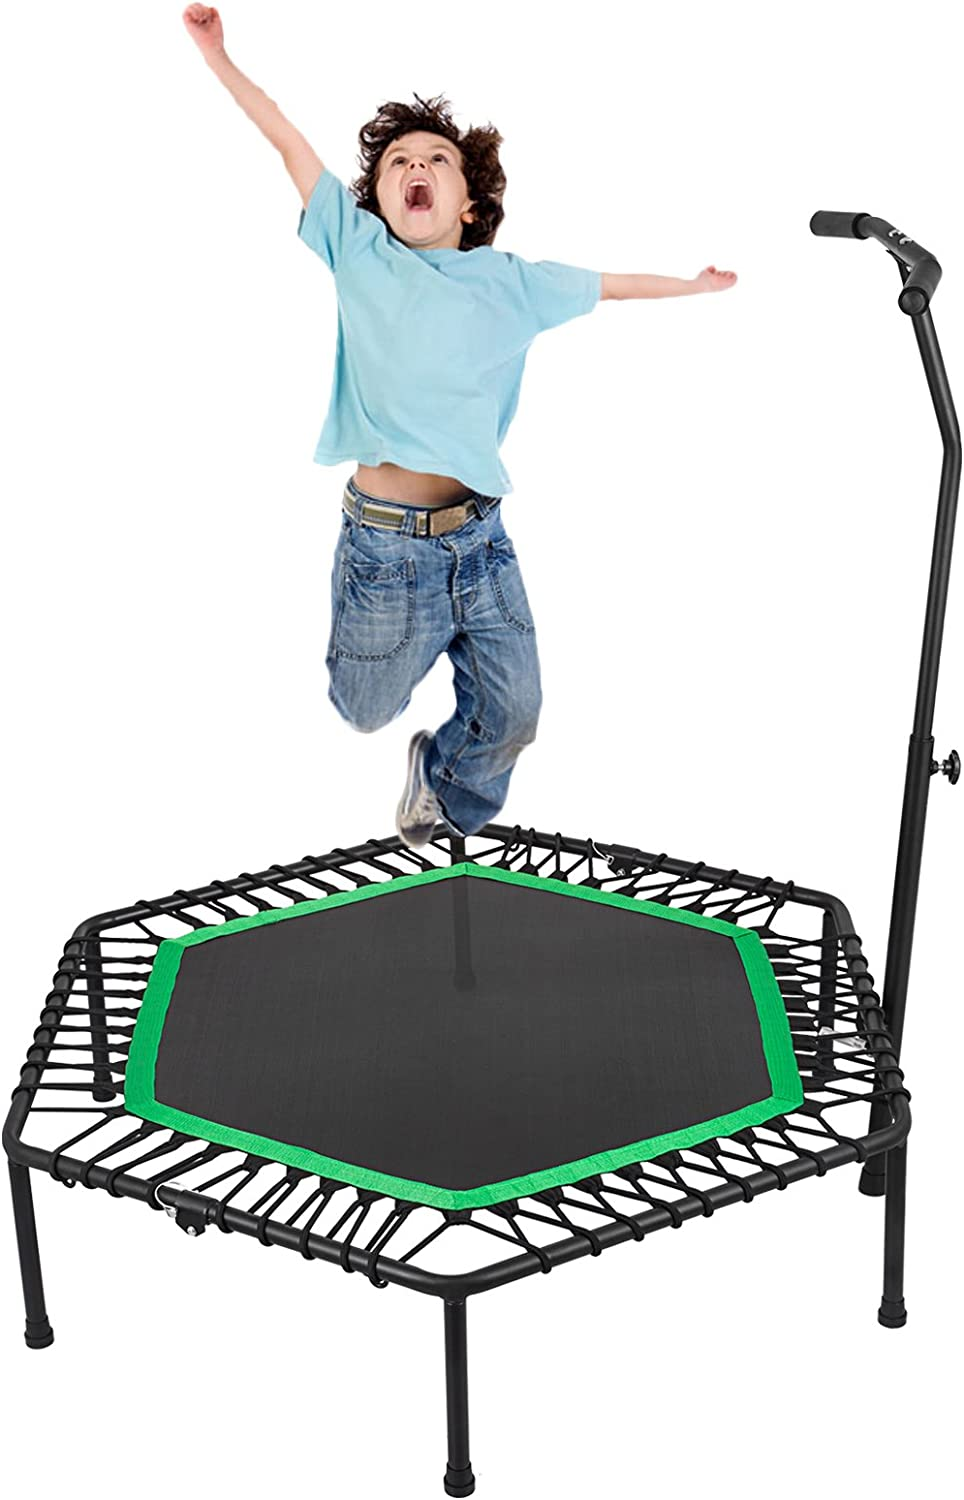 Popsport 36 40 50.4 inch Mini Trampoline 220 330 lbs Fitness Trampoline in-Home Single Double Easy Installion and Storage Rebounder with Bungee Cover and Rubber Bungees for Home Cardio Exercise